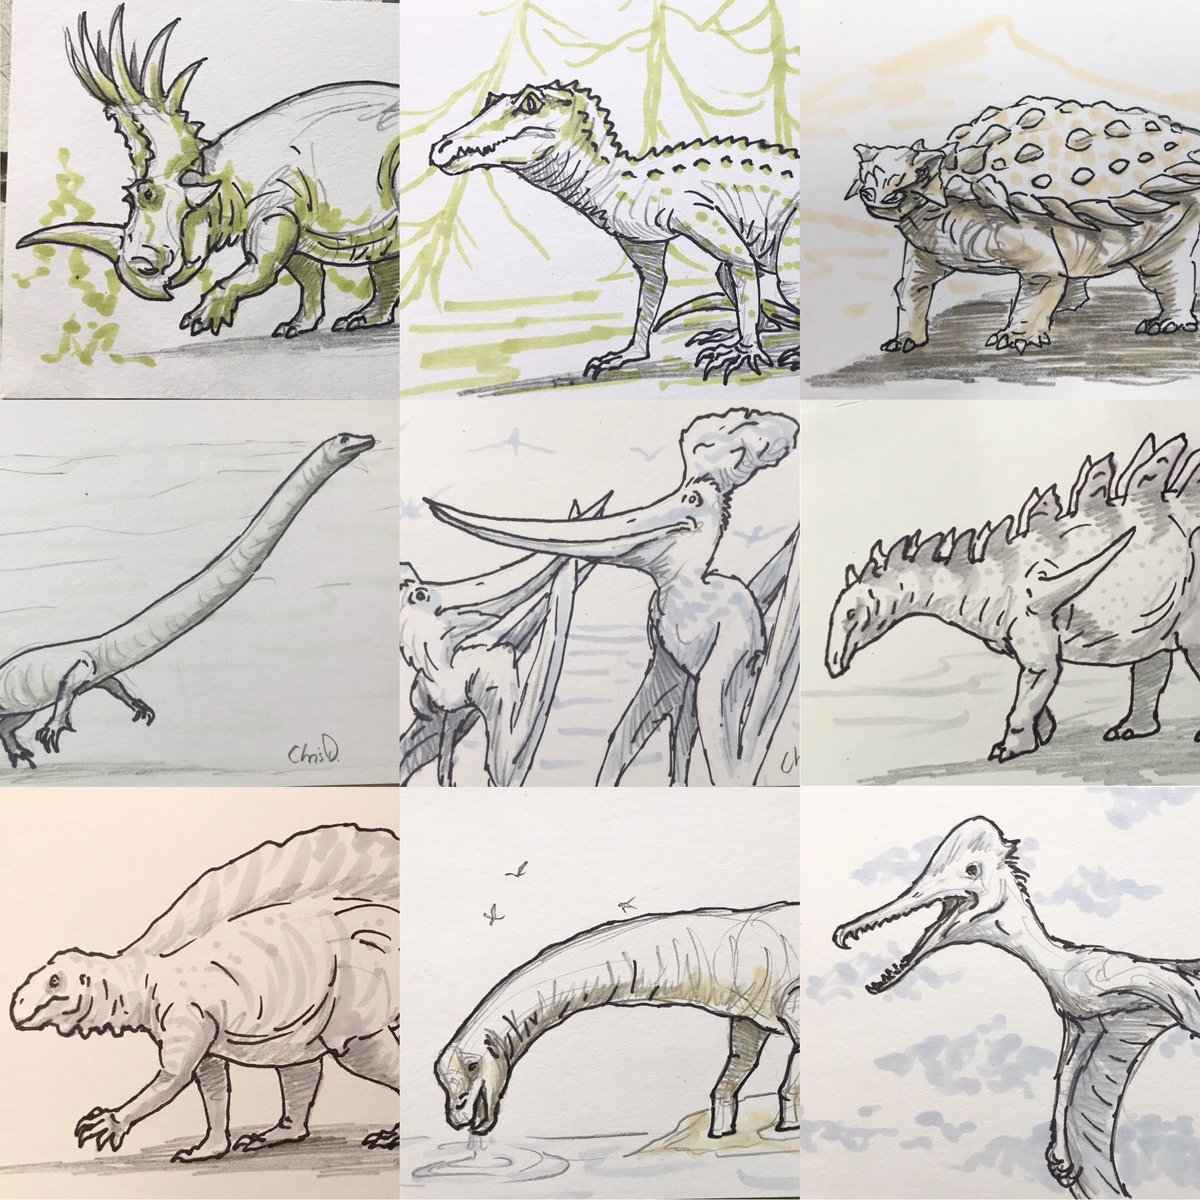 I'm selling my original #drawdinovember entries for $20 each again this year. Good opportunity to own a piece of original art for a relatively cheap price. Each are 5x3inches. DM me if interested. #supportoriginalpaleoart #paleoart #art #dinosaurs